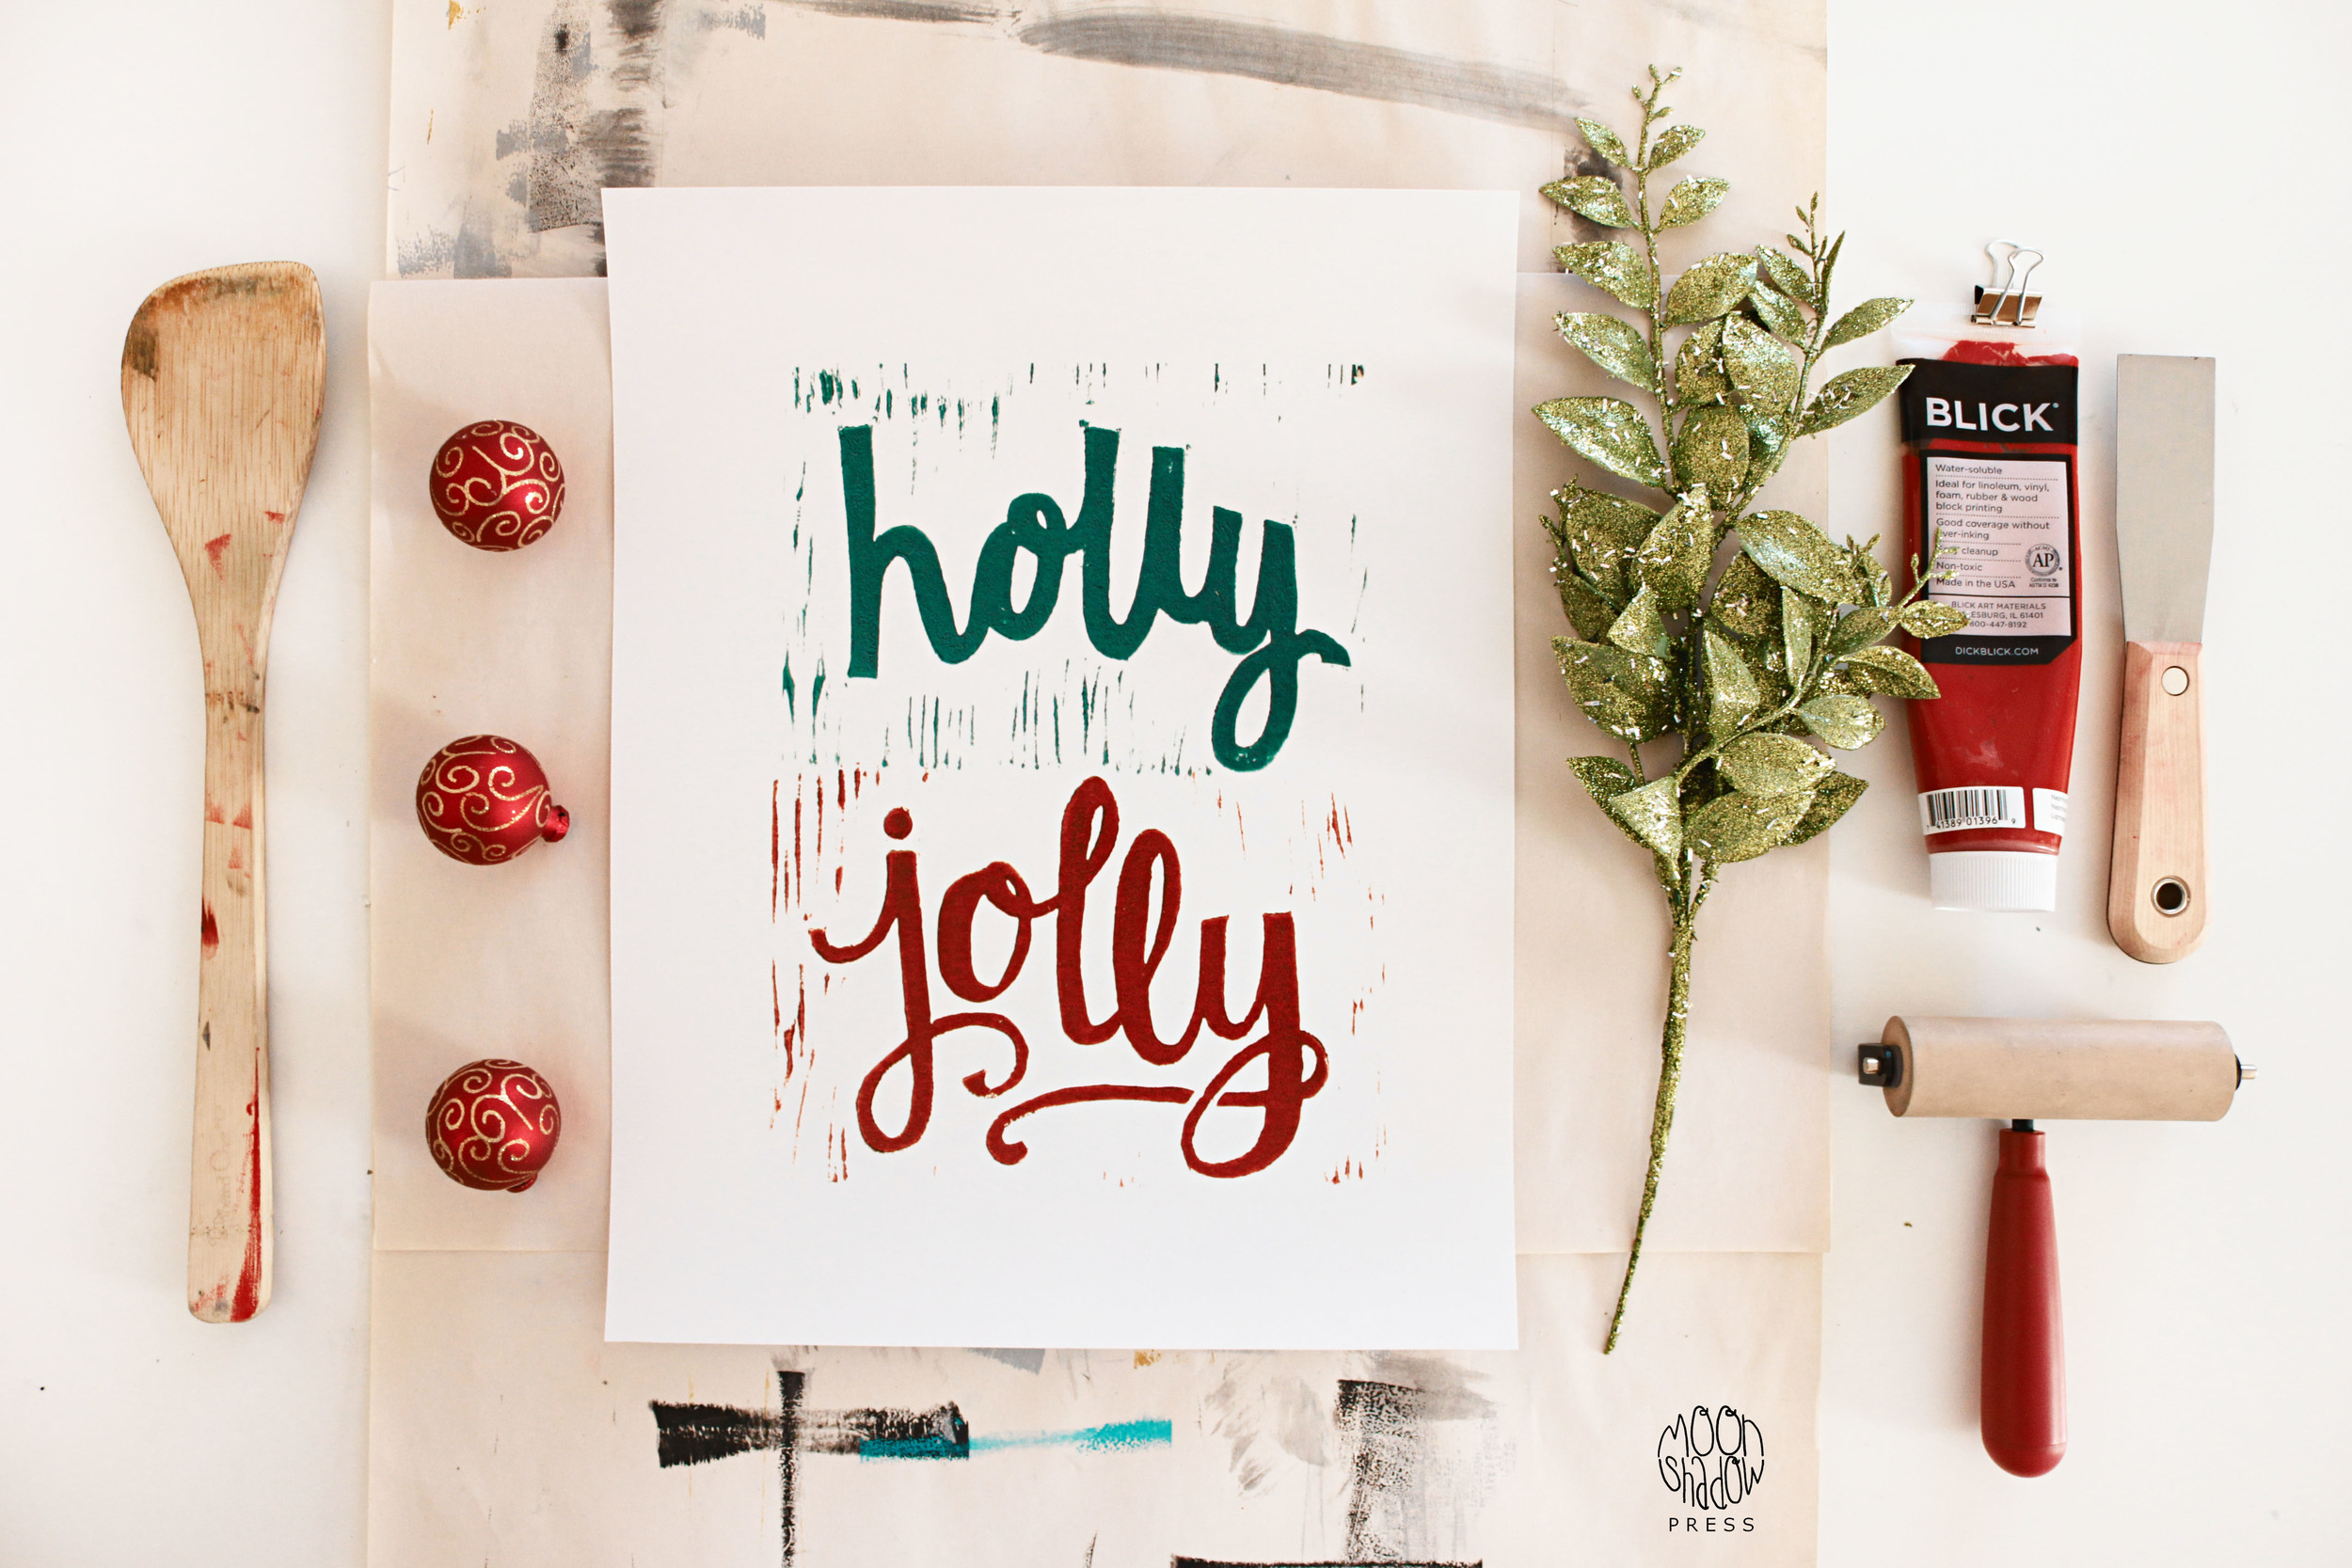 product_P_hollyjolly1_logo.jpg